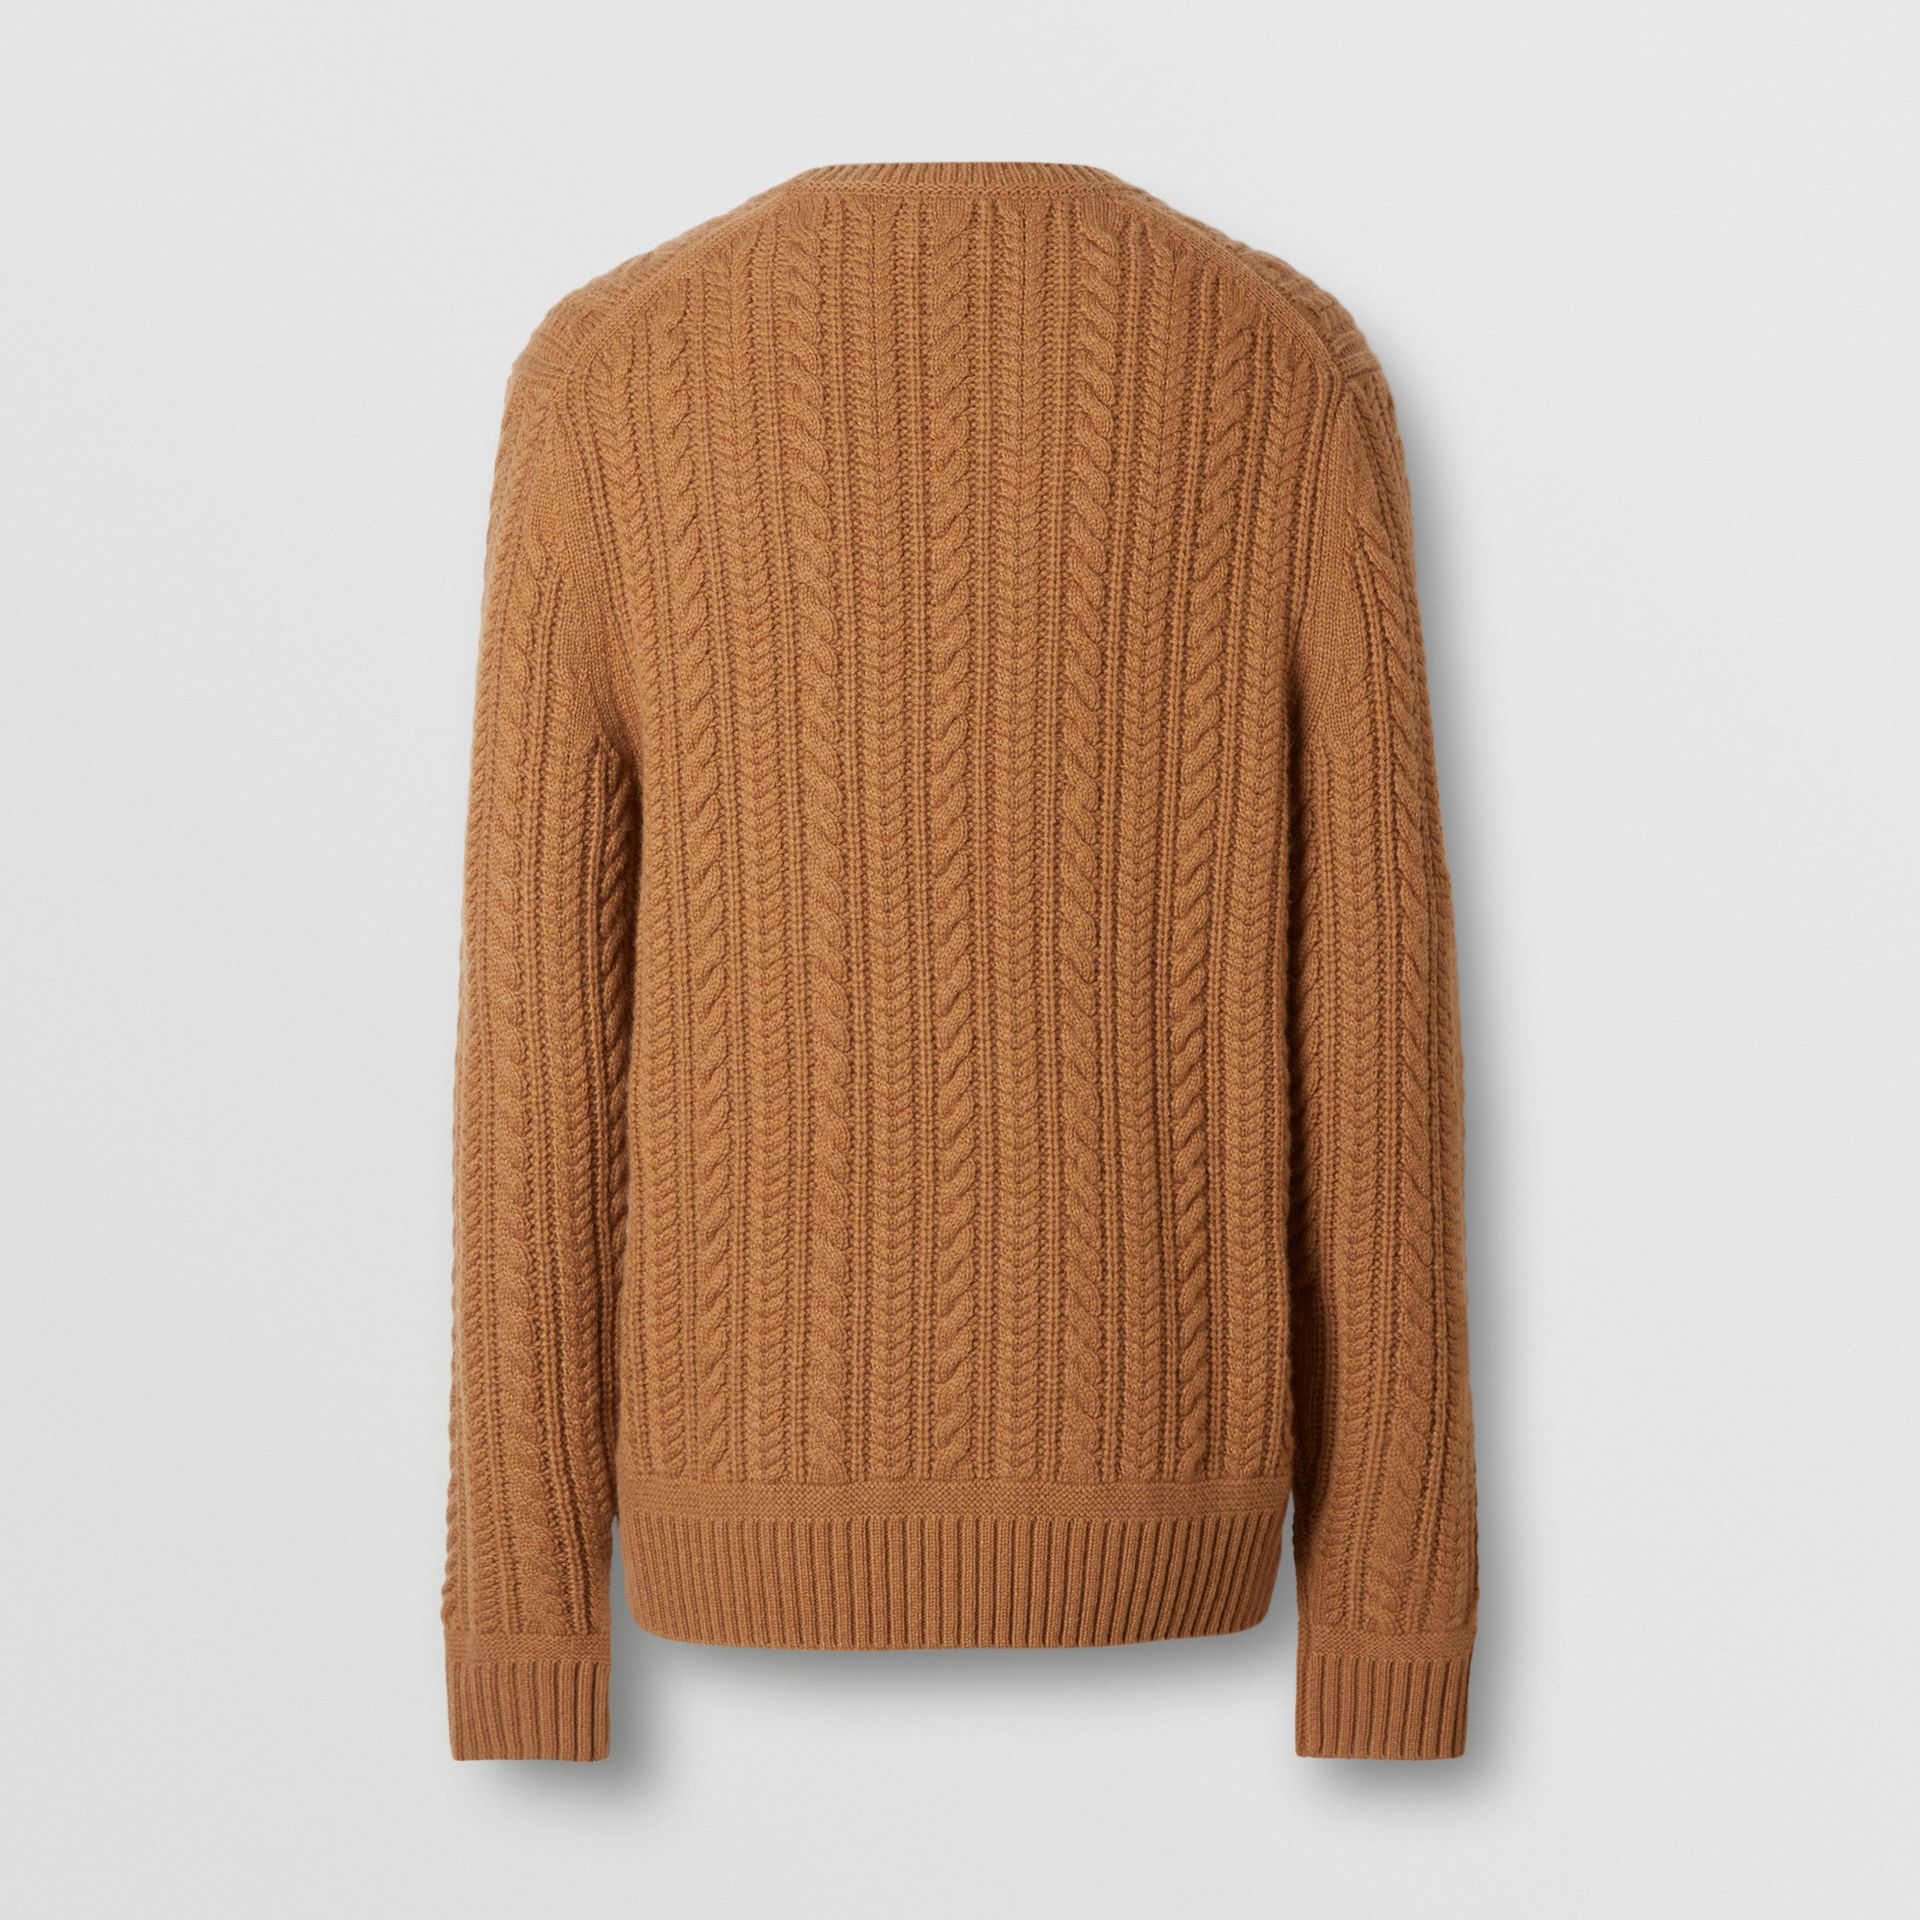 Cable Knit Cashmere Sweater in Maple - Men | Burberry United Kingdom - gallery image 6